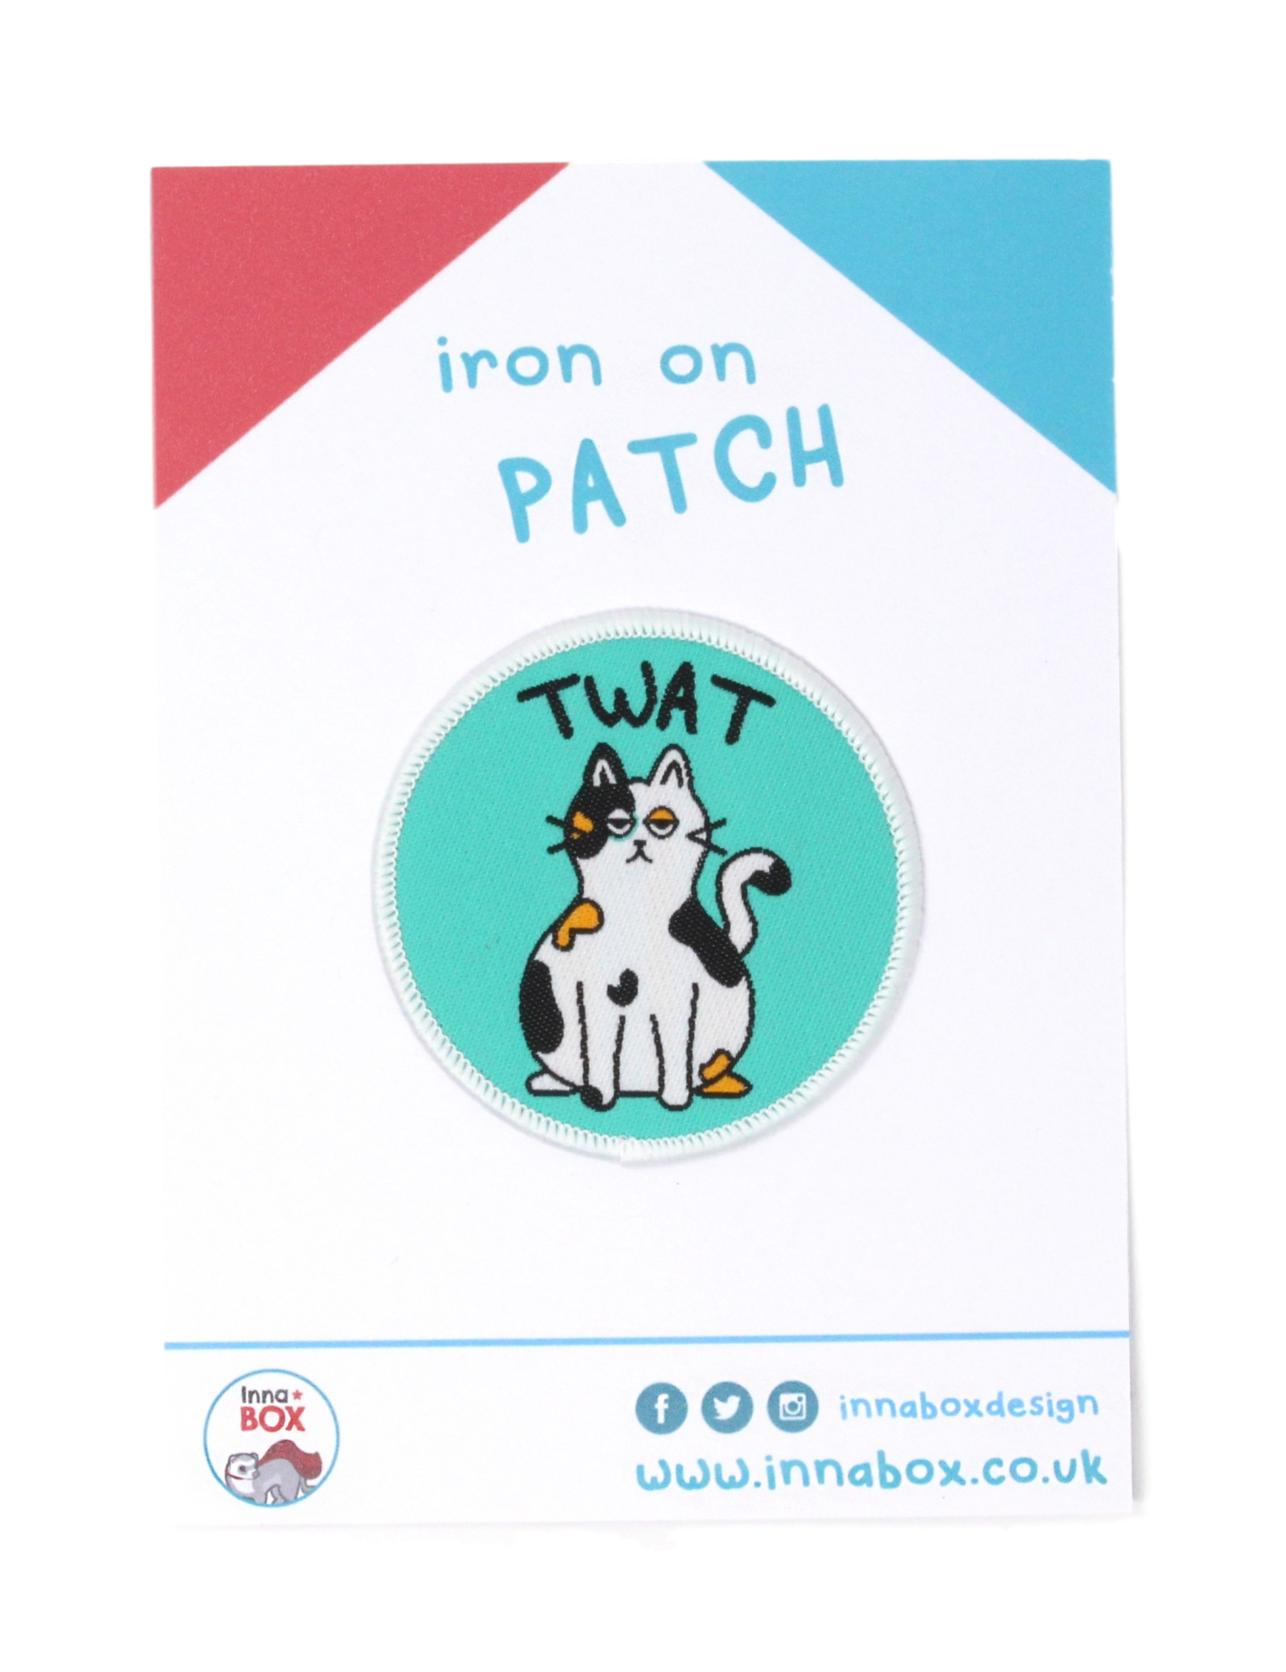 Twat Cat Iron on Patch